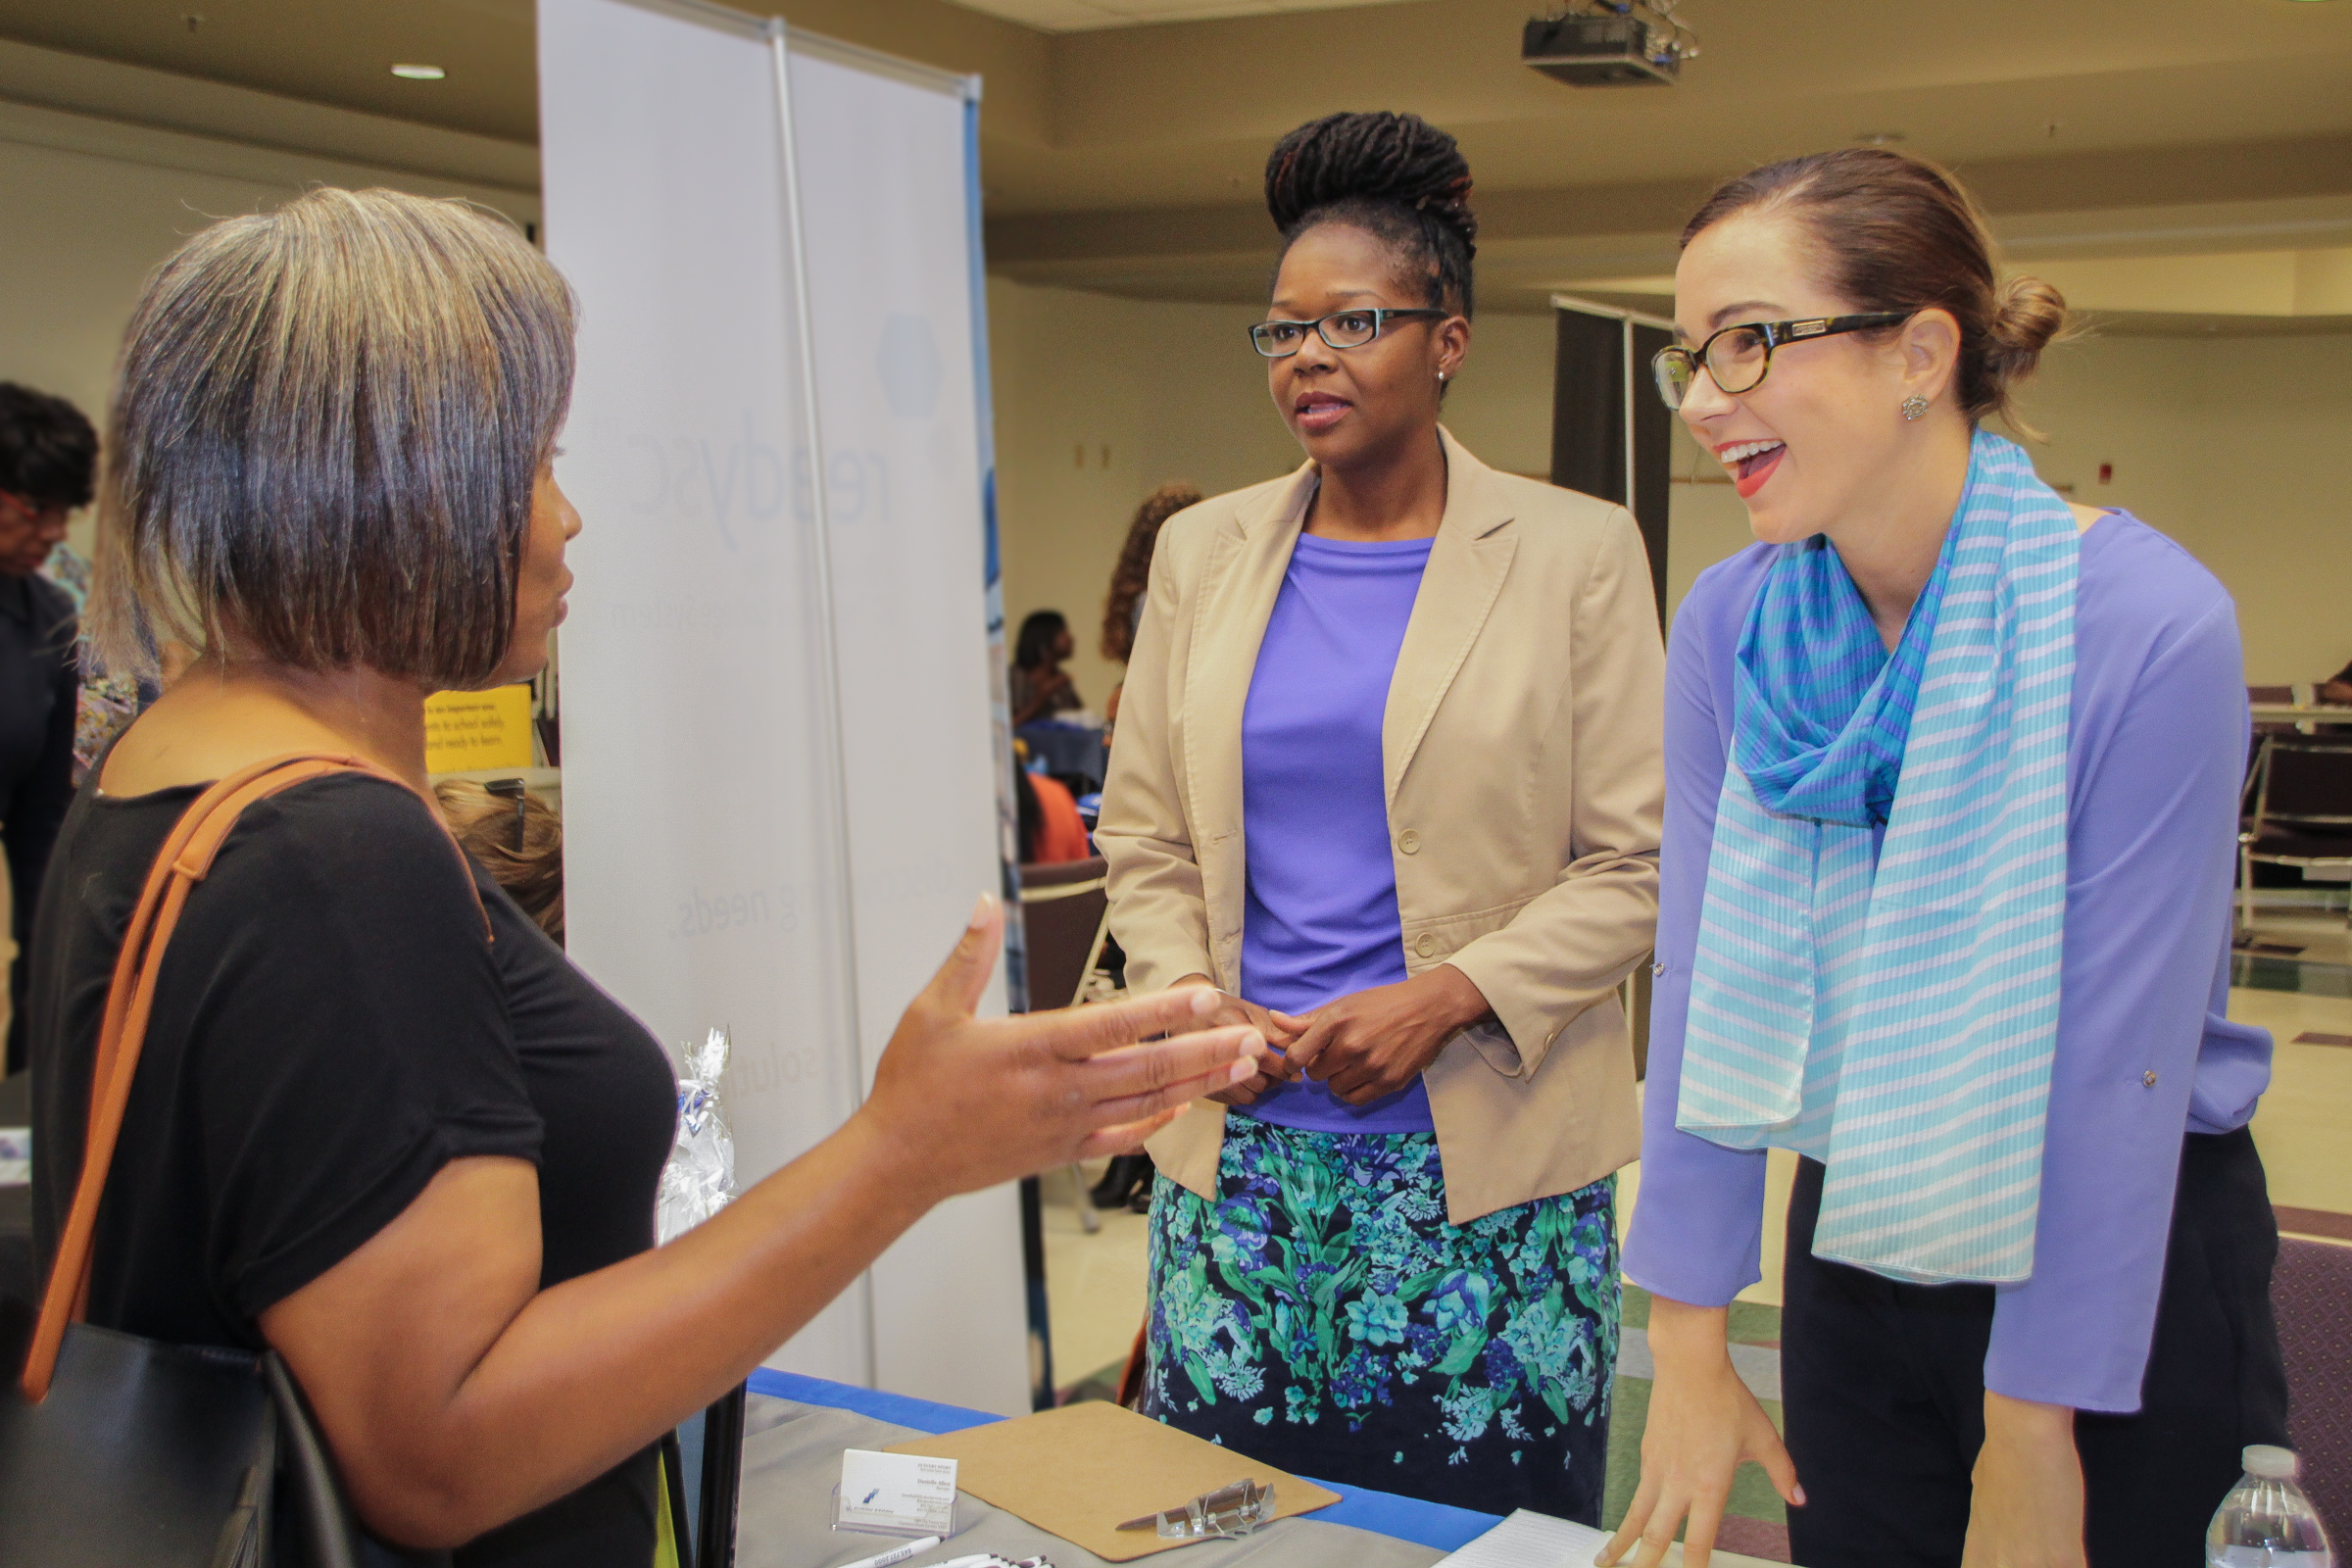 Re-entry Job Fairs offer opportunities across the state